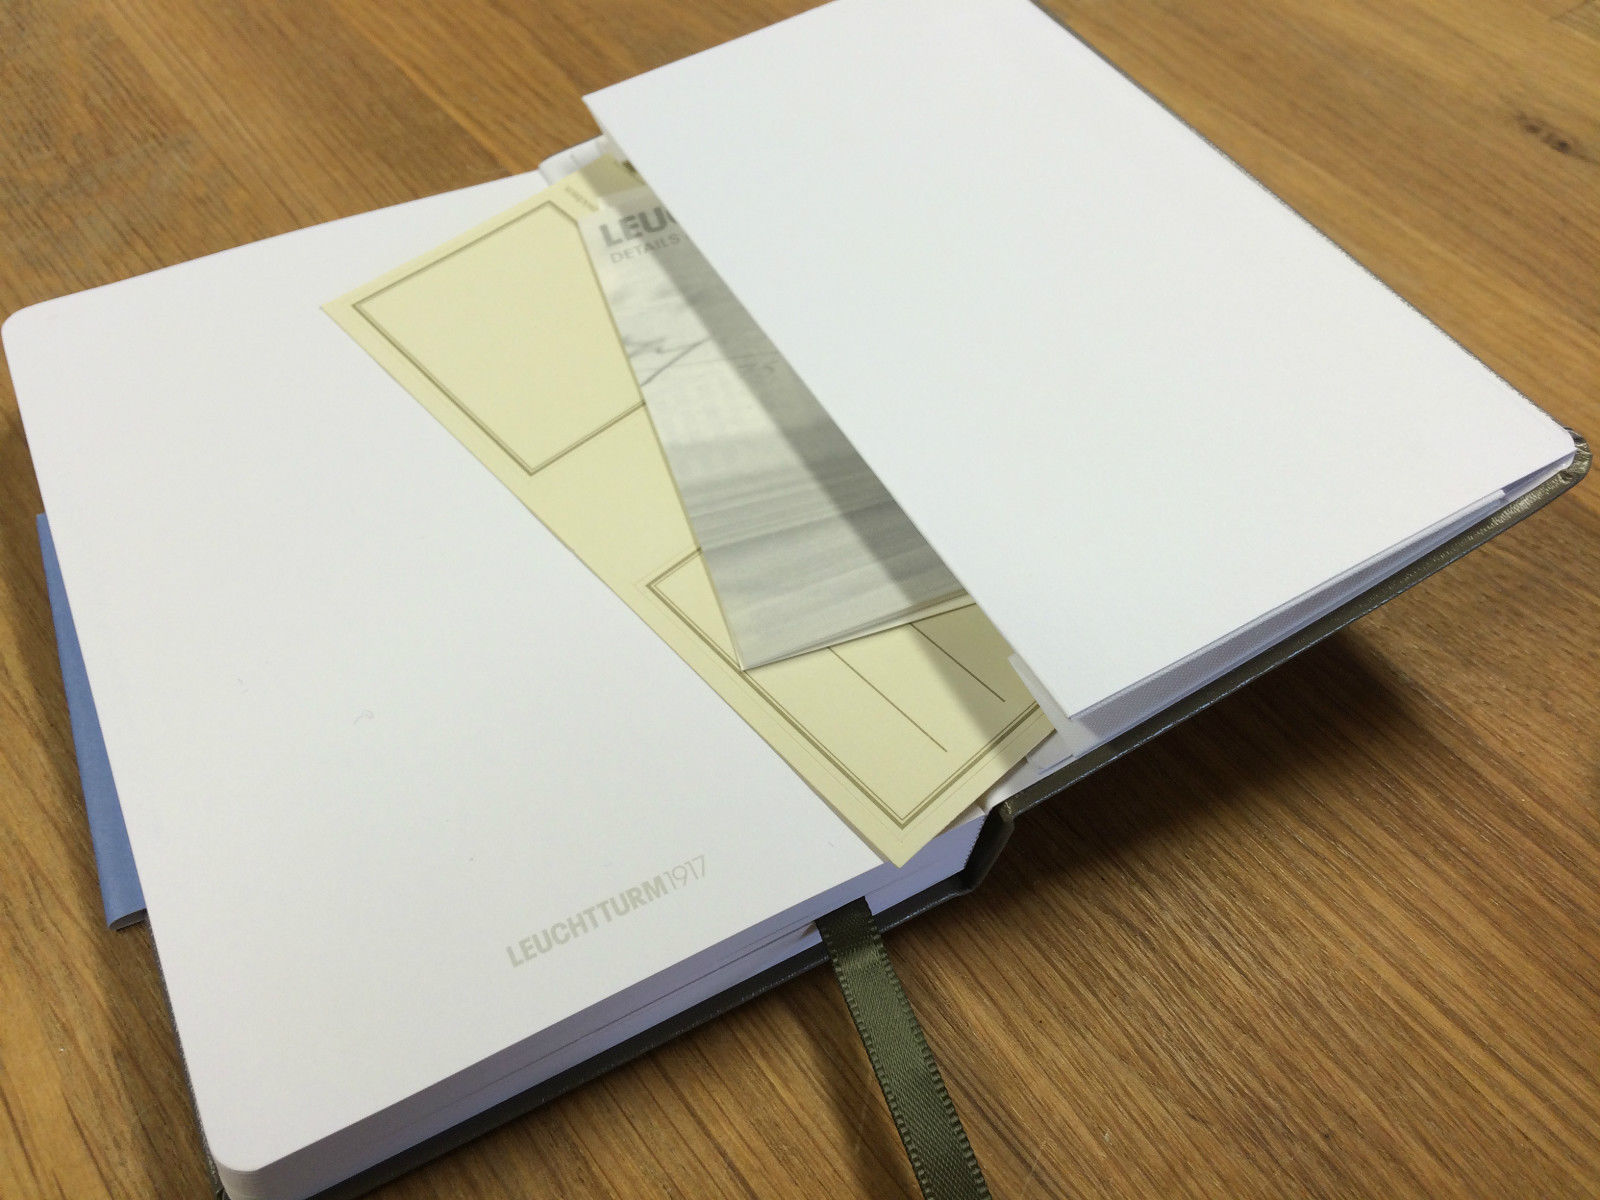 Leuchtturm-A5-Hardback-Sketch-Book-Quality-180gsm-Artists-Drawing-Sketchbook-152114721245-4